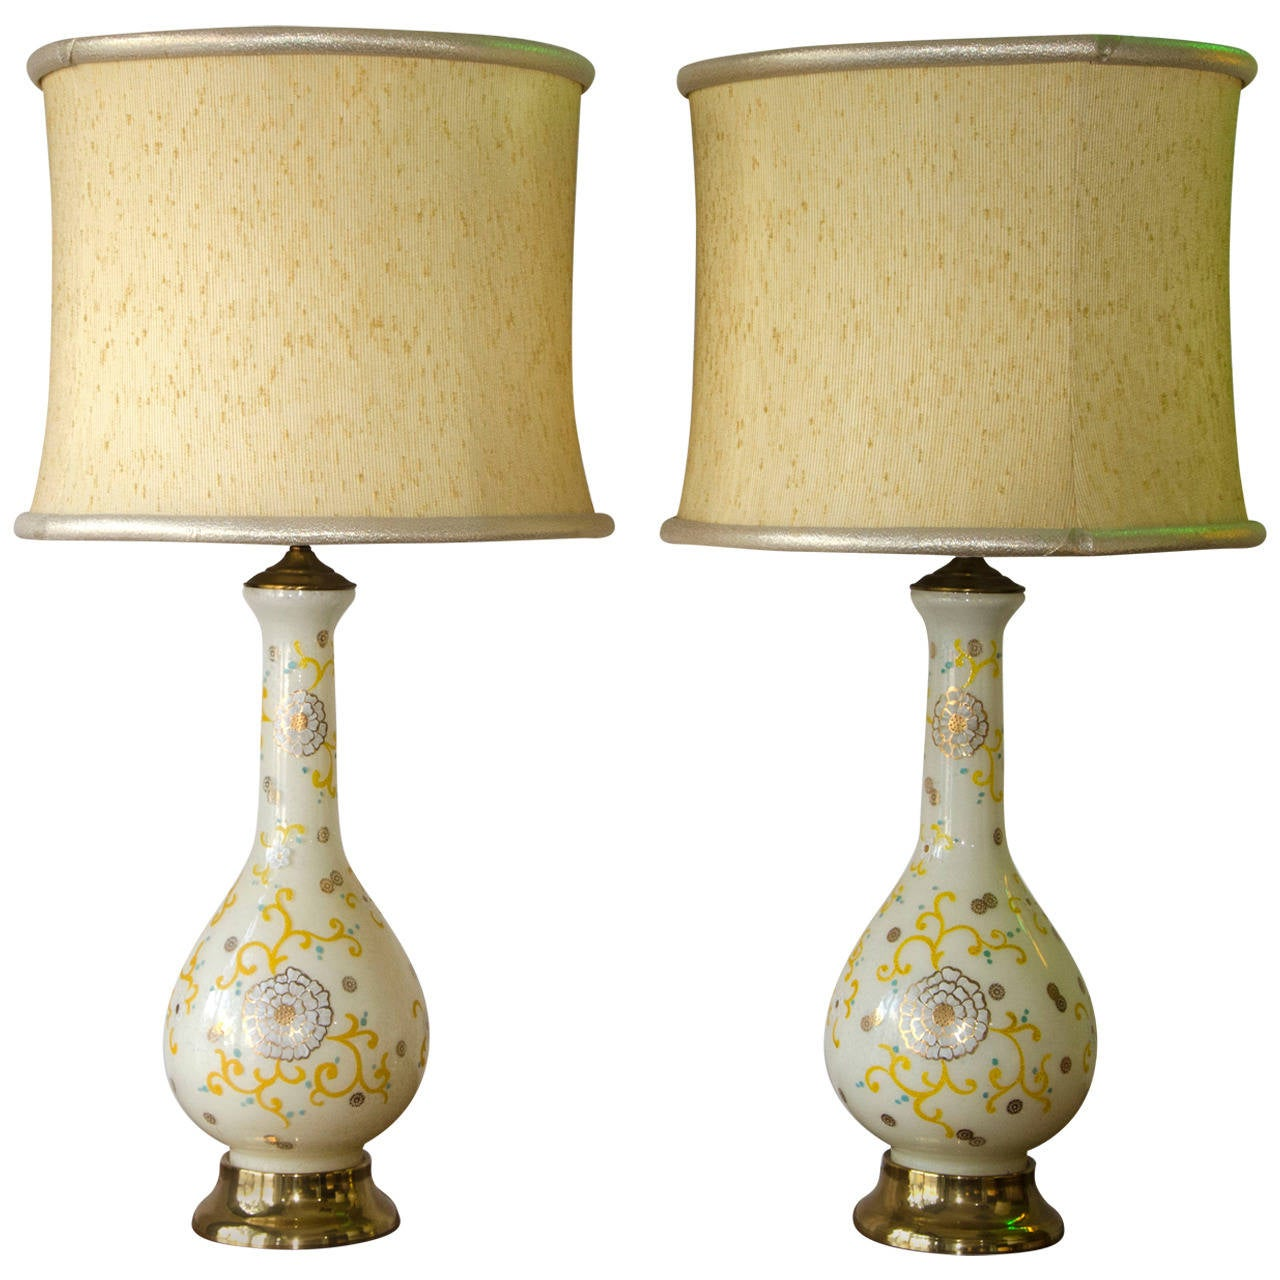 Pair of Mid Century Lamps in Glass, Hollywood Regency